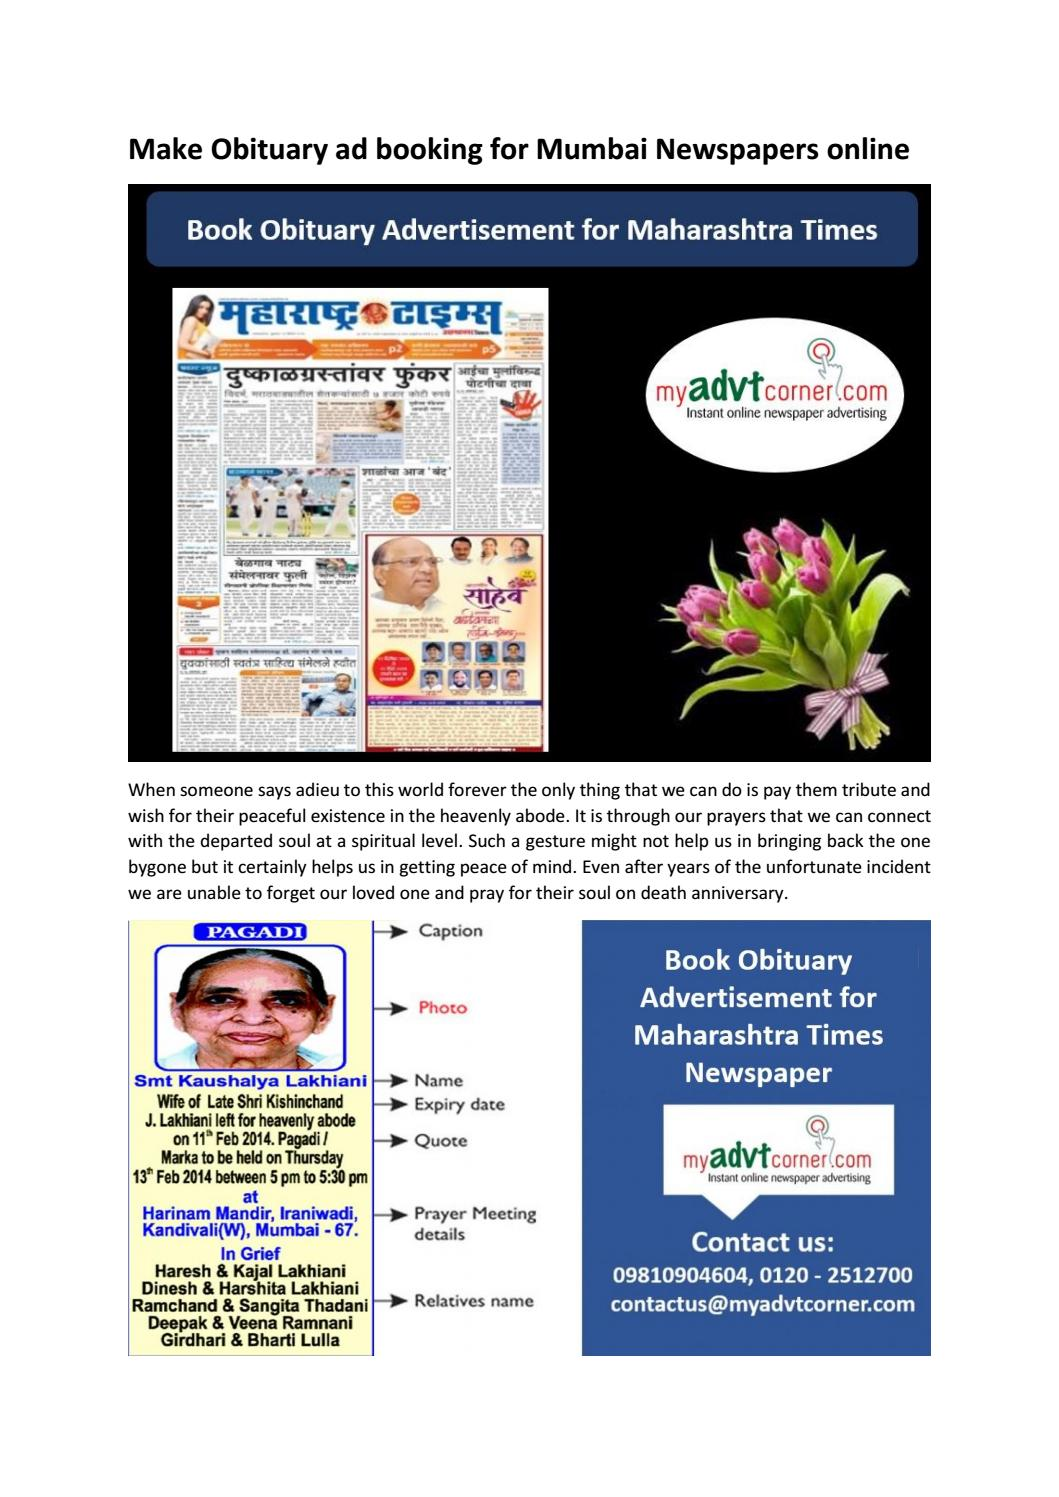 Make Obituary Ad Booking For Mumbai Newspapers Online By